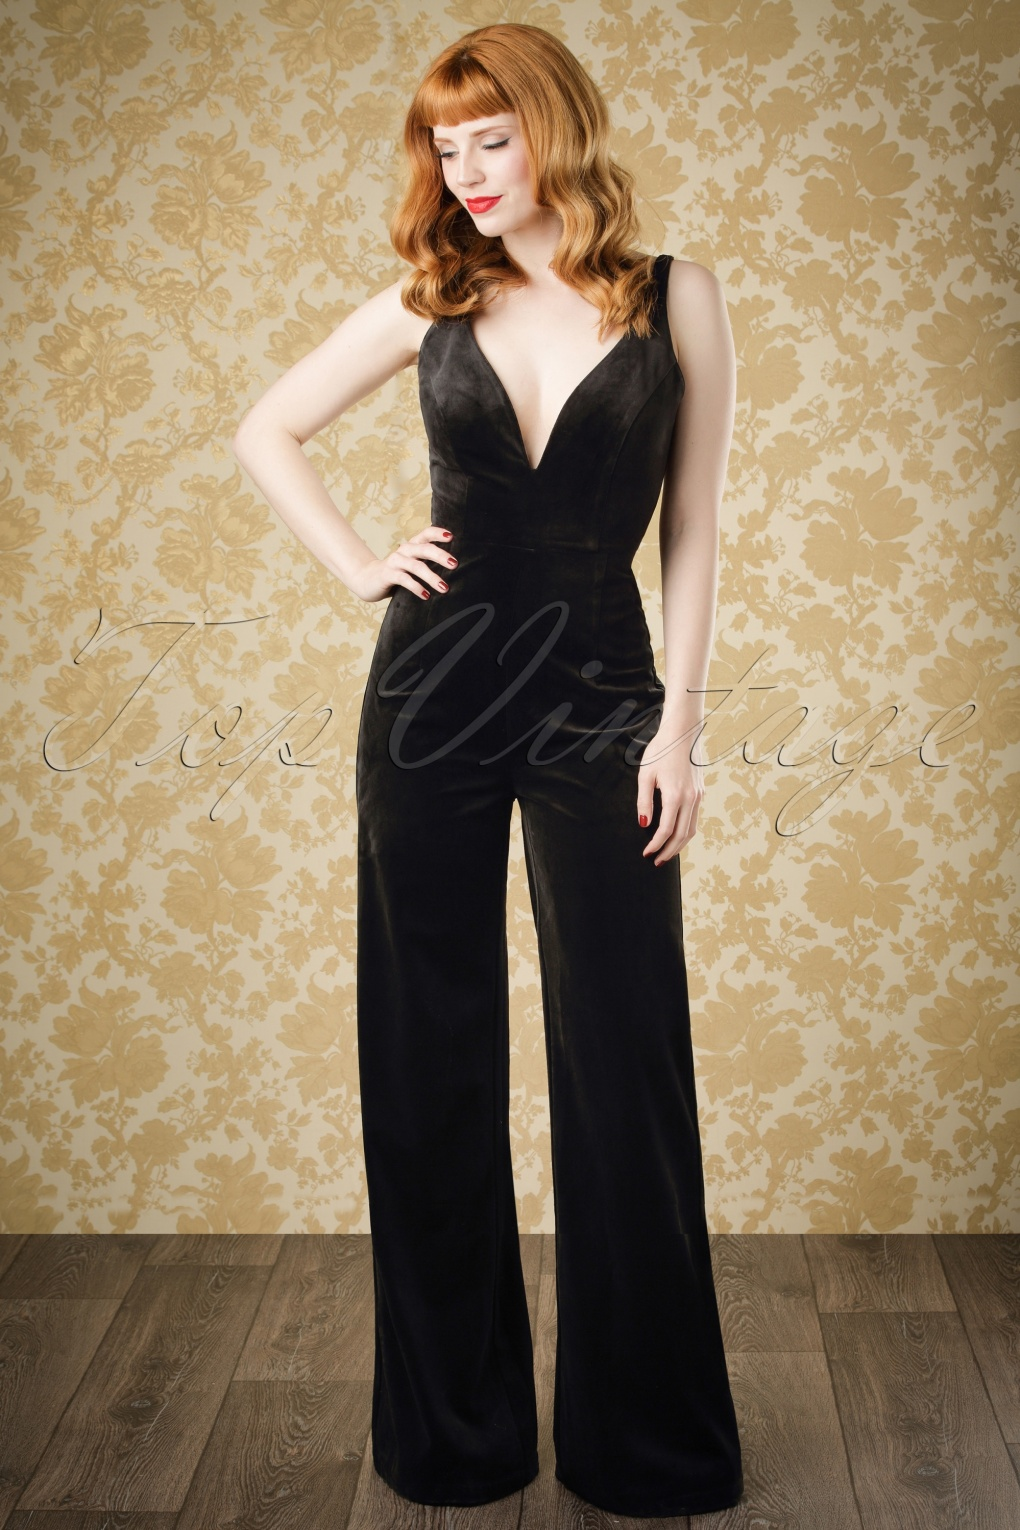 Vintage Overalls 1910s -1950s Pictures and History 70s Sasha Velvet Jumpsuit in Black £71.88 AT vintagedancer.com